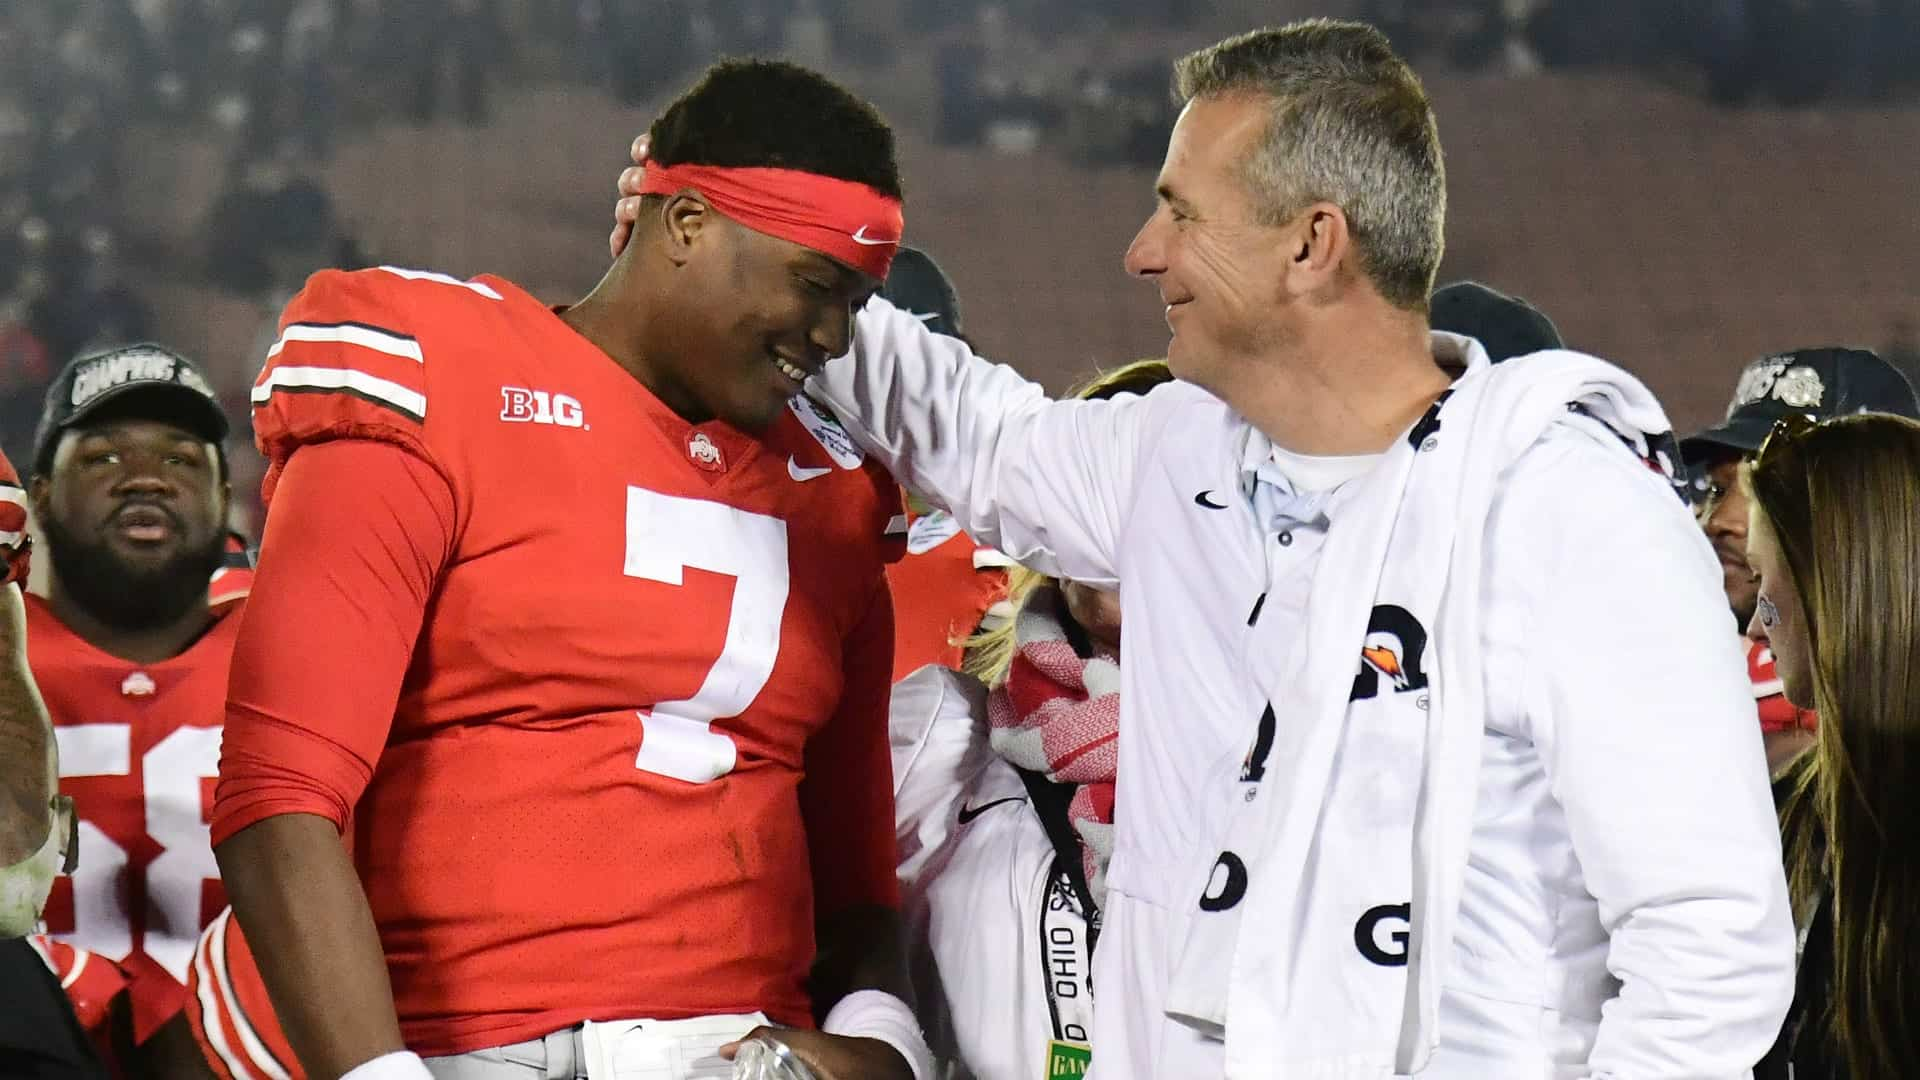 Urban Meyer: NFL interest enough to return to coaching?